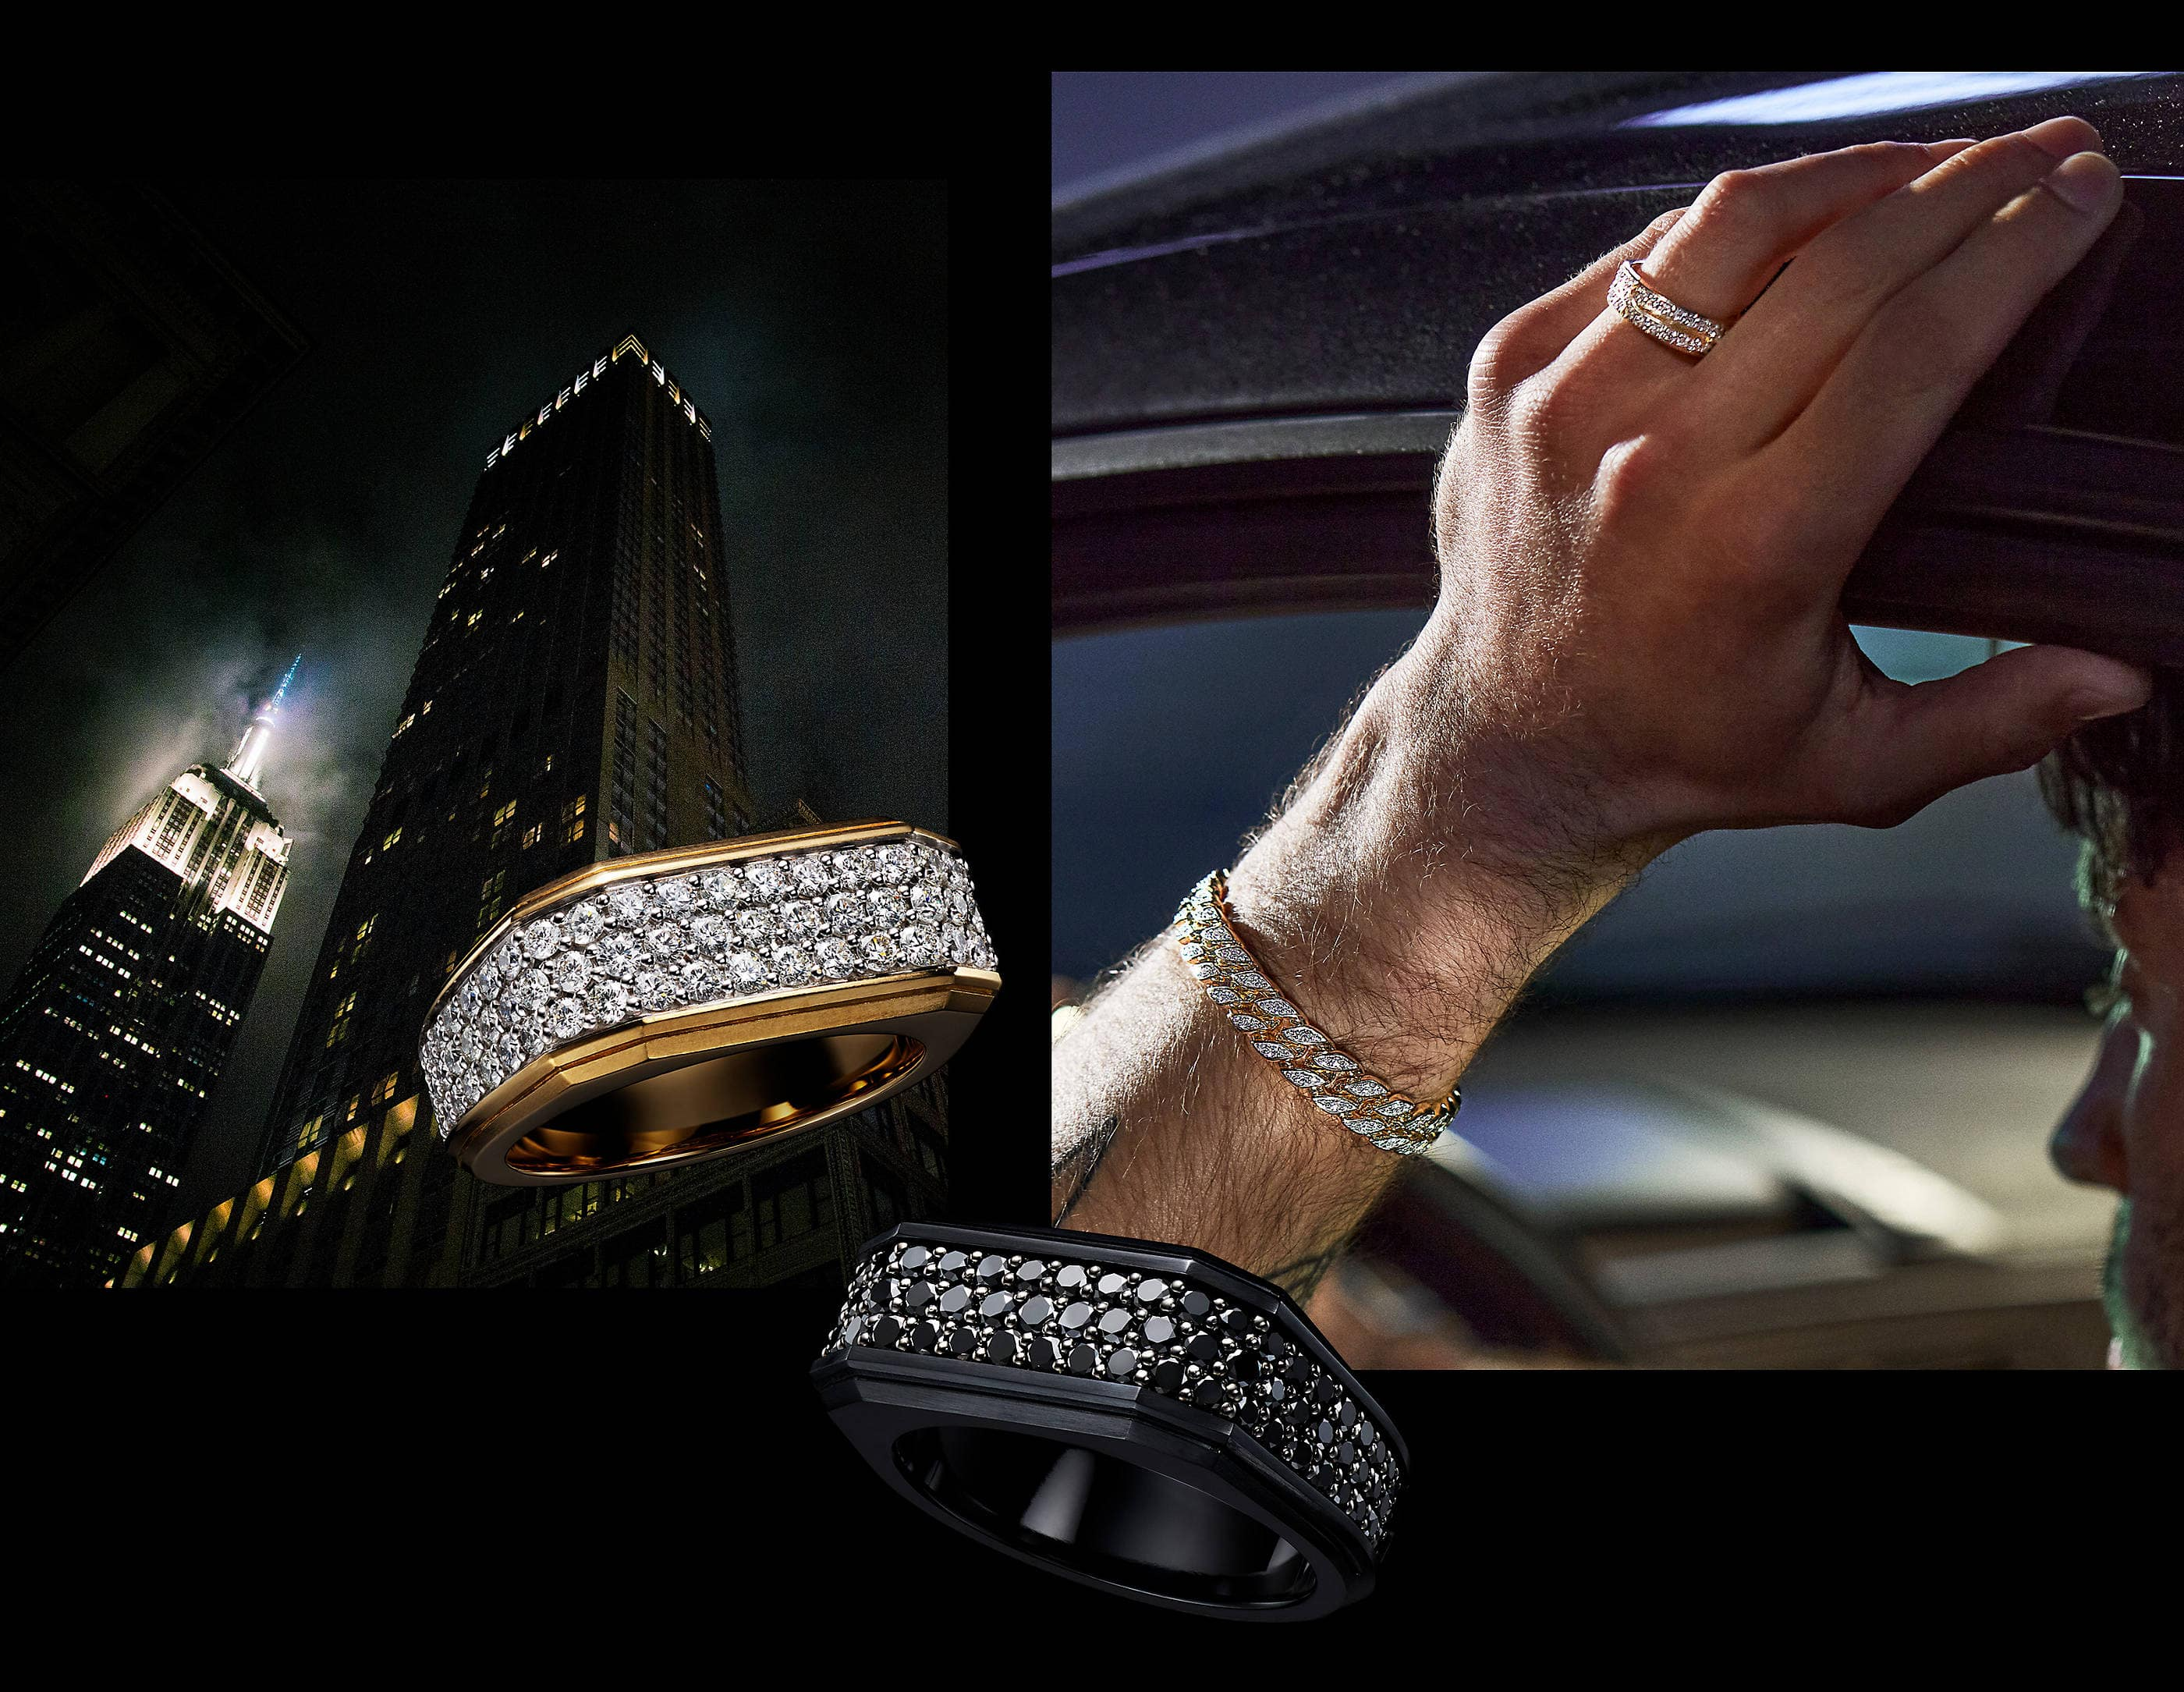 An image of a David Yurman ring and a curb chain bracelet, both in 18K yellow gold with pavé white diamonds. Overlapping both photos are David Yurman Roman rings. One ring is crafted from 18K yellow gold with three rows of pavé white diamonds. The other ring is crafted from black titanium with three rows of pavé black diamonds.